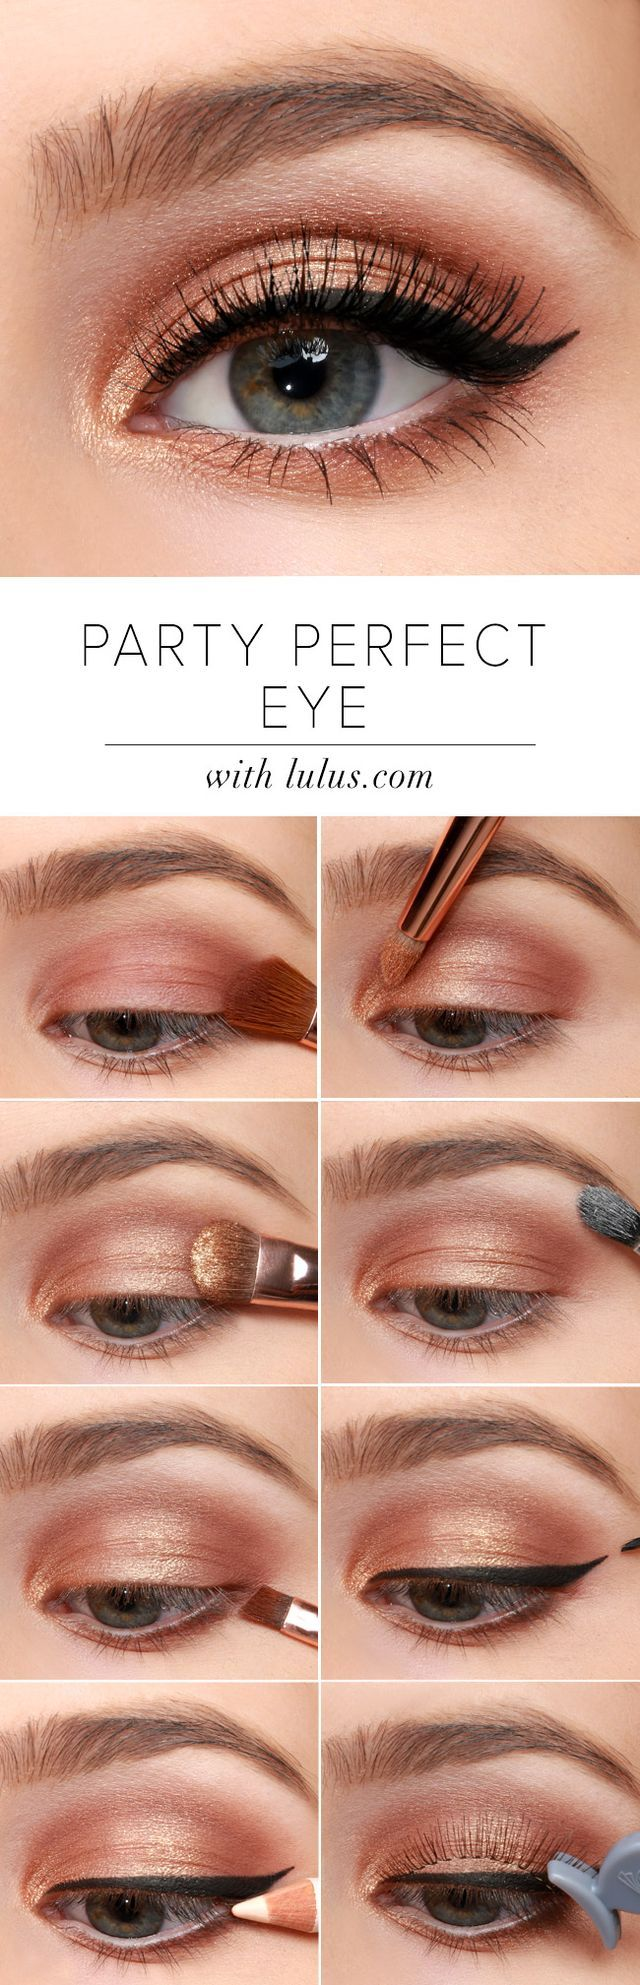 Your party calendar is full, you've picked out the dress, now it's time to top off your look with our Party Perfect Eye Makeup Tutorial! Shimmering golds and a sleek black cat eye are the perfect pair